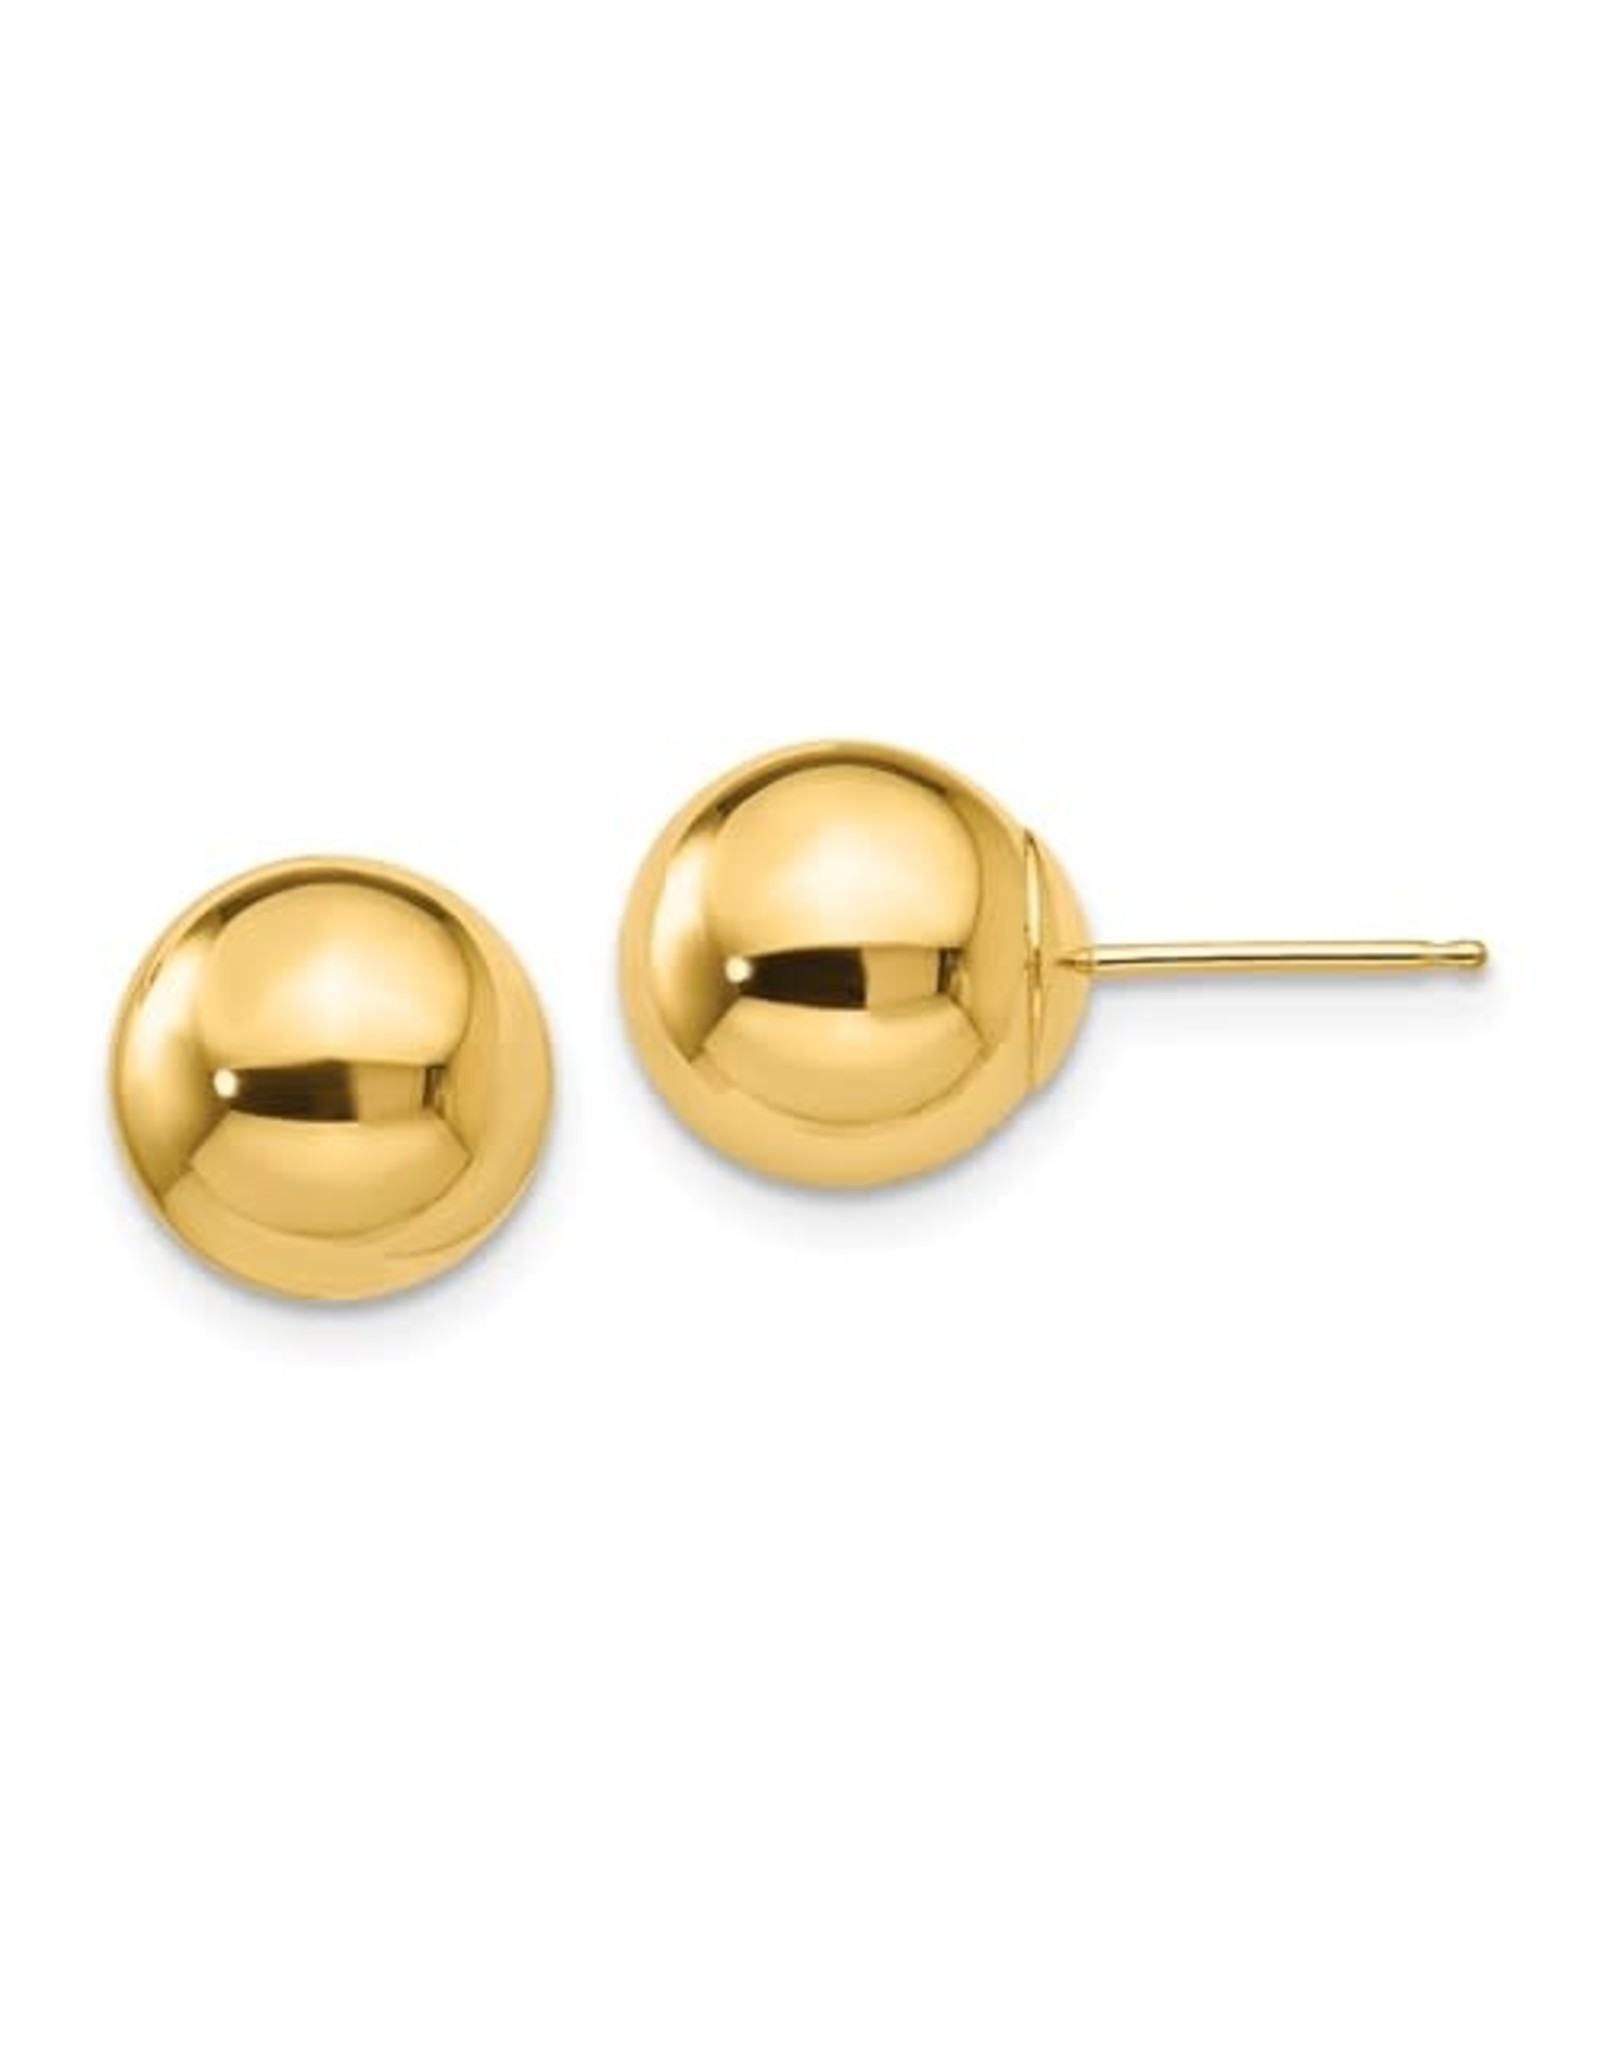 14K Yellow Gold 9mm Ball Stud Earrings with Friction Back